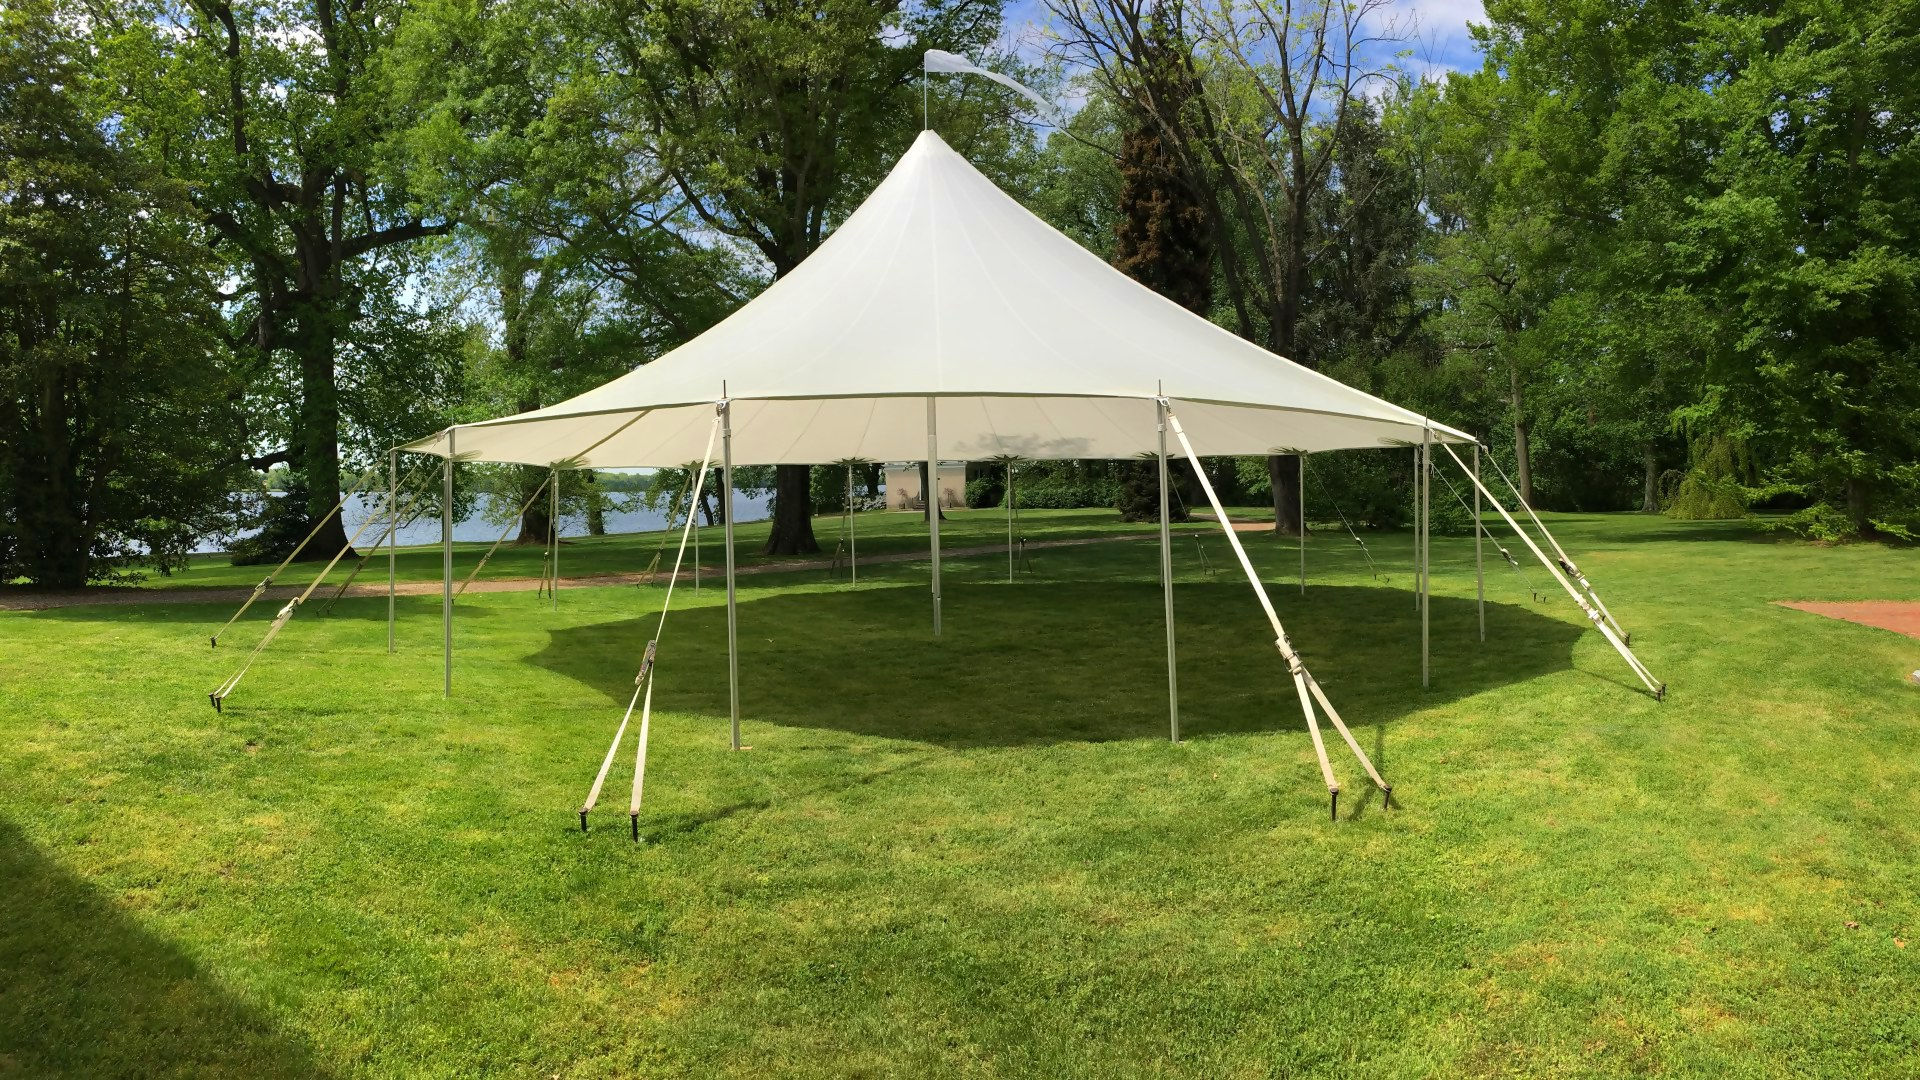 Beautiful sailcloth tent for rent in Coatesville, PA